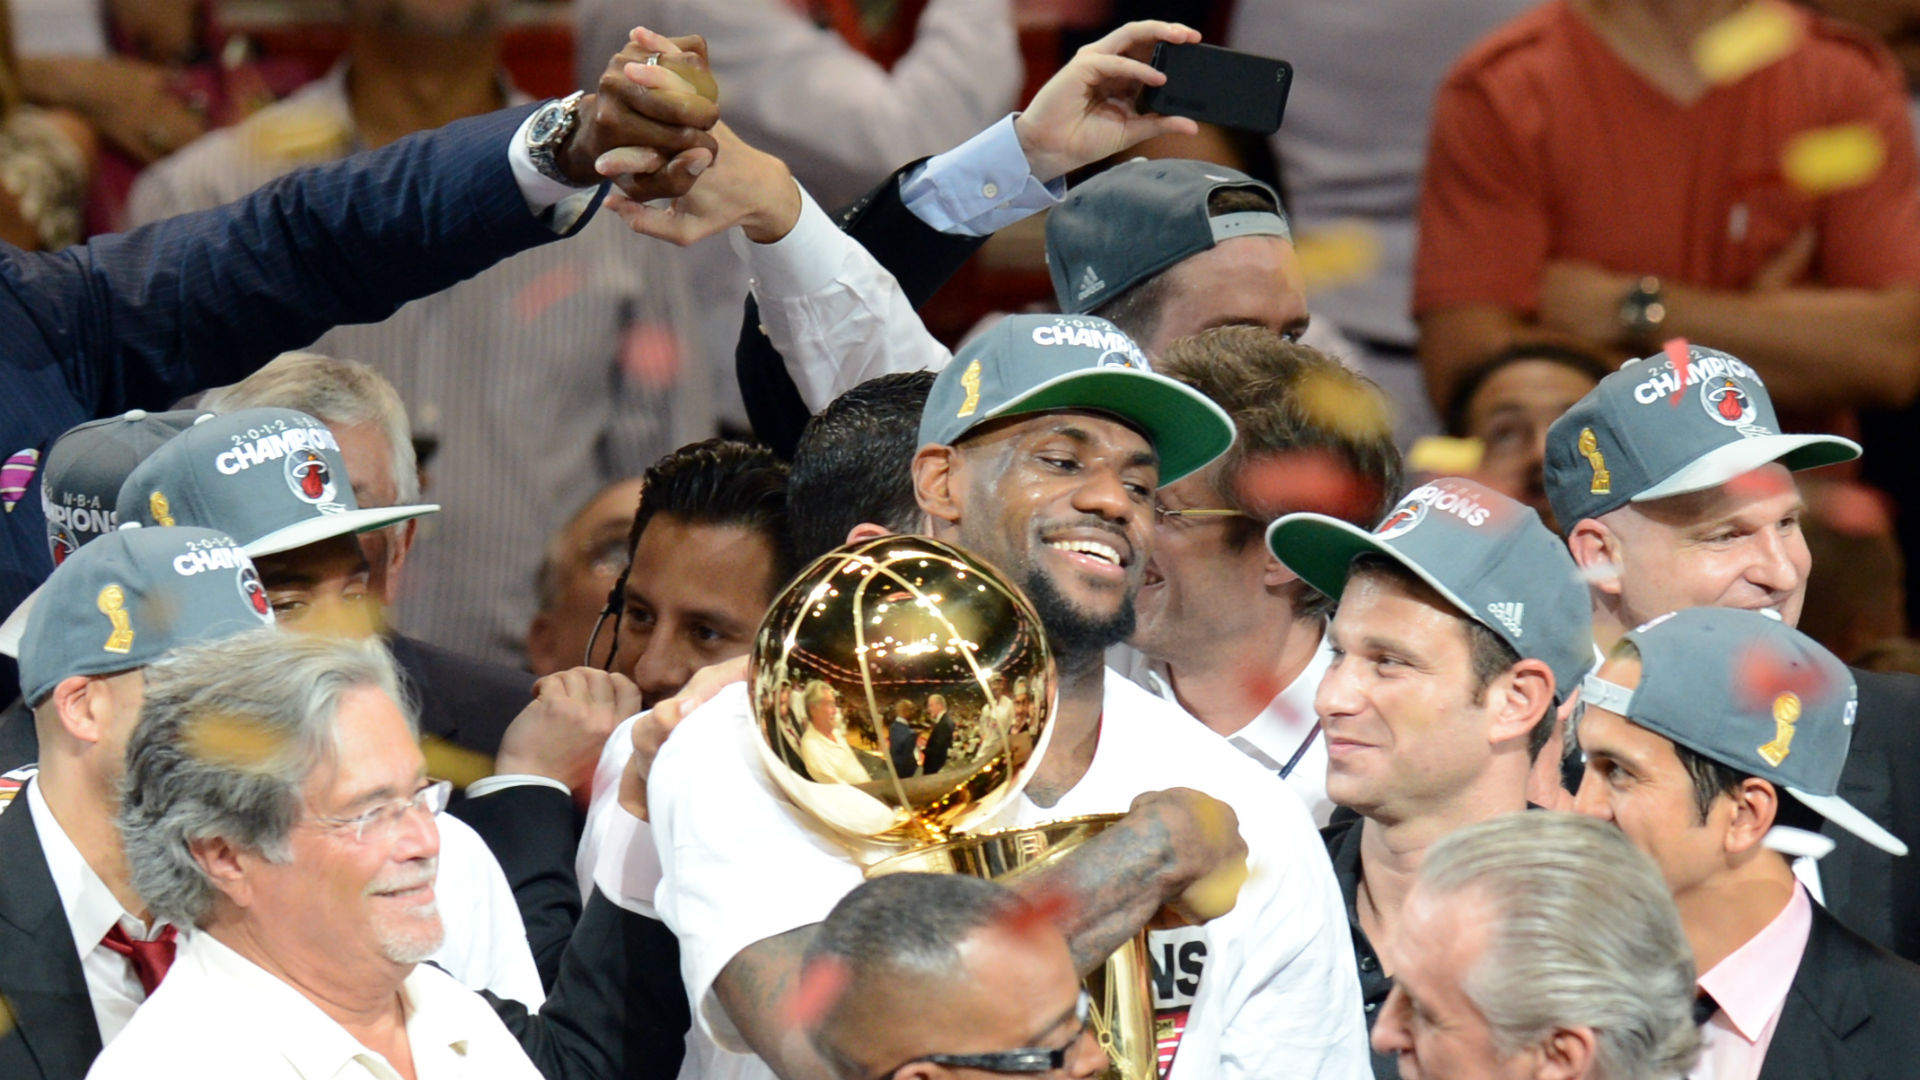 On this day in sport: Brazil make World Cup history, LeBron's wait comes to an end